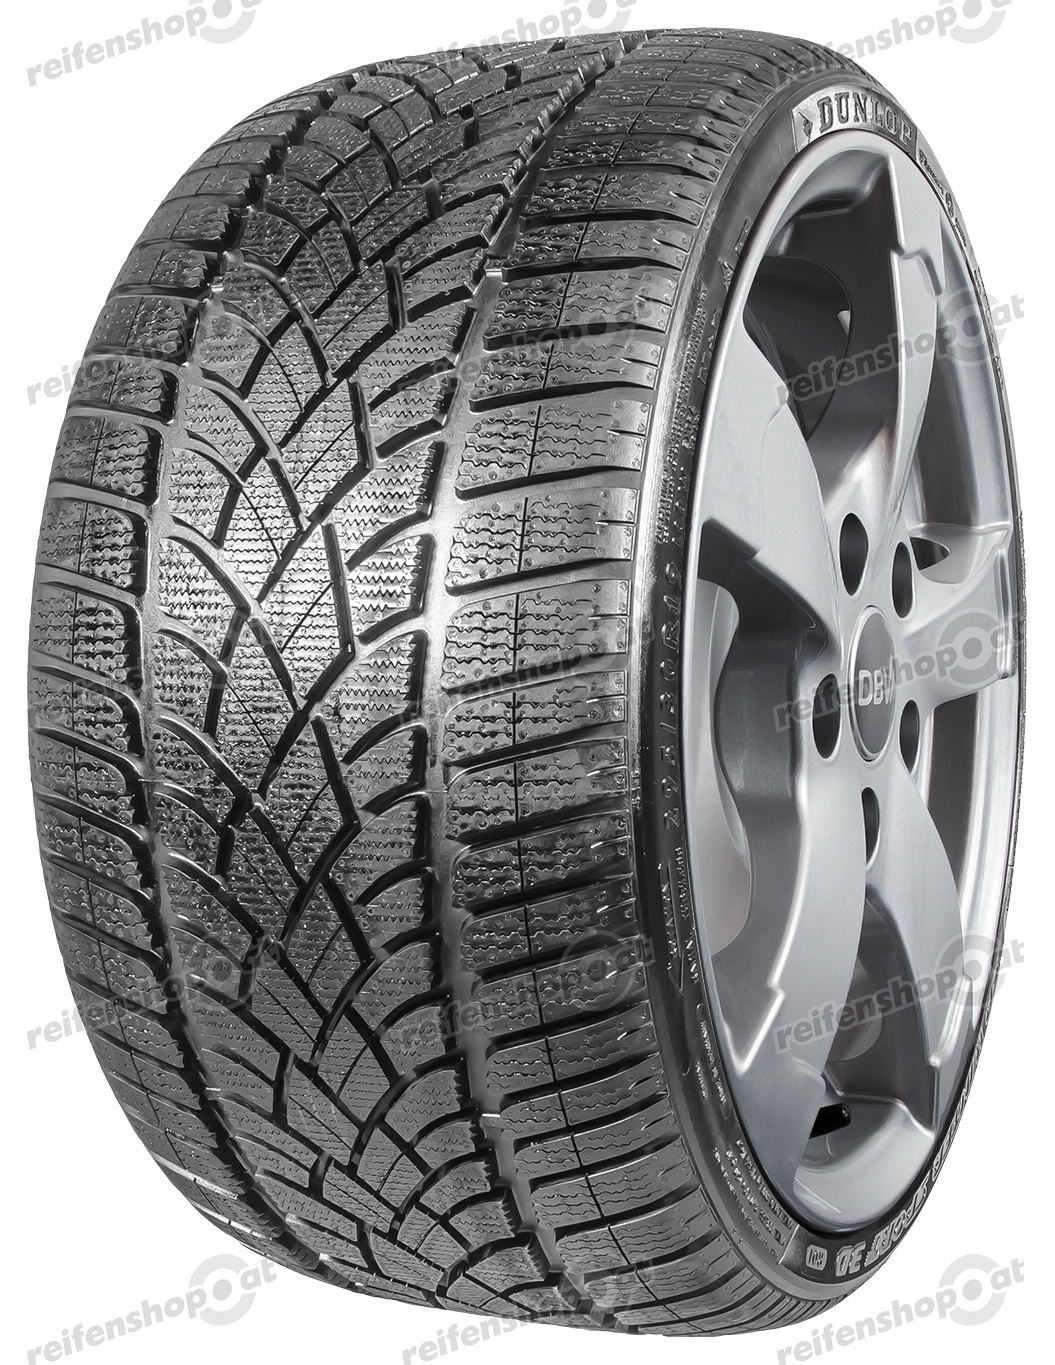 235/40 R19 96V SP Winter Sport 3D XL RO1 MFS  SP Winter Sport 3D XL RO1 MFS